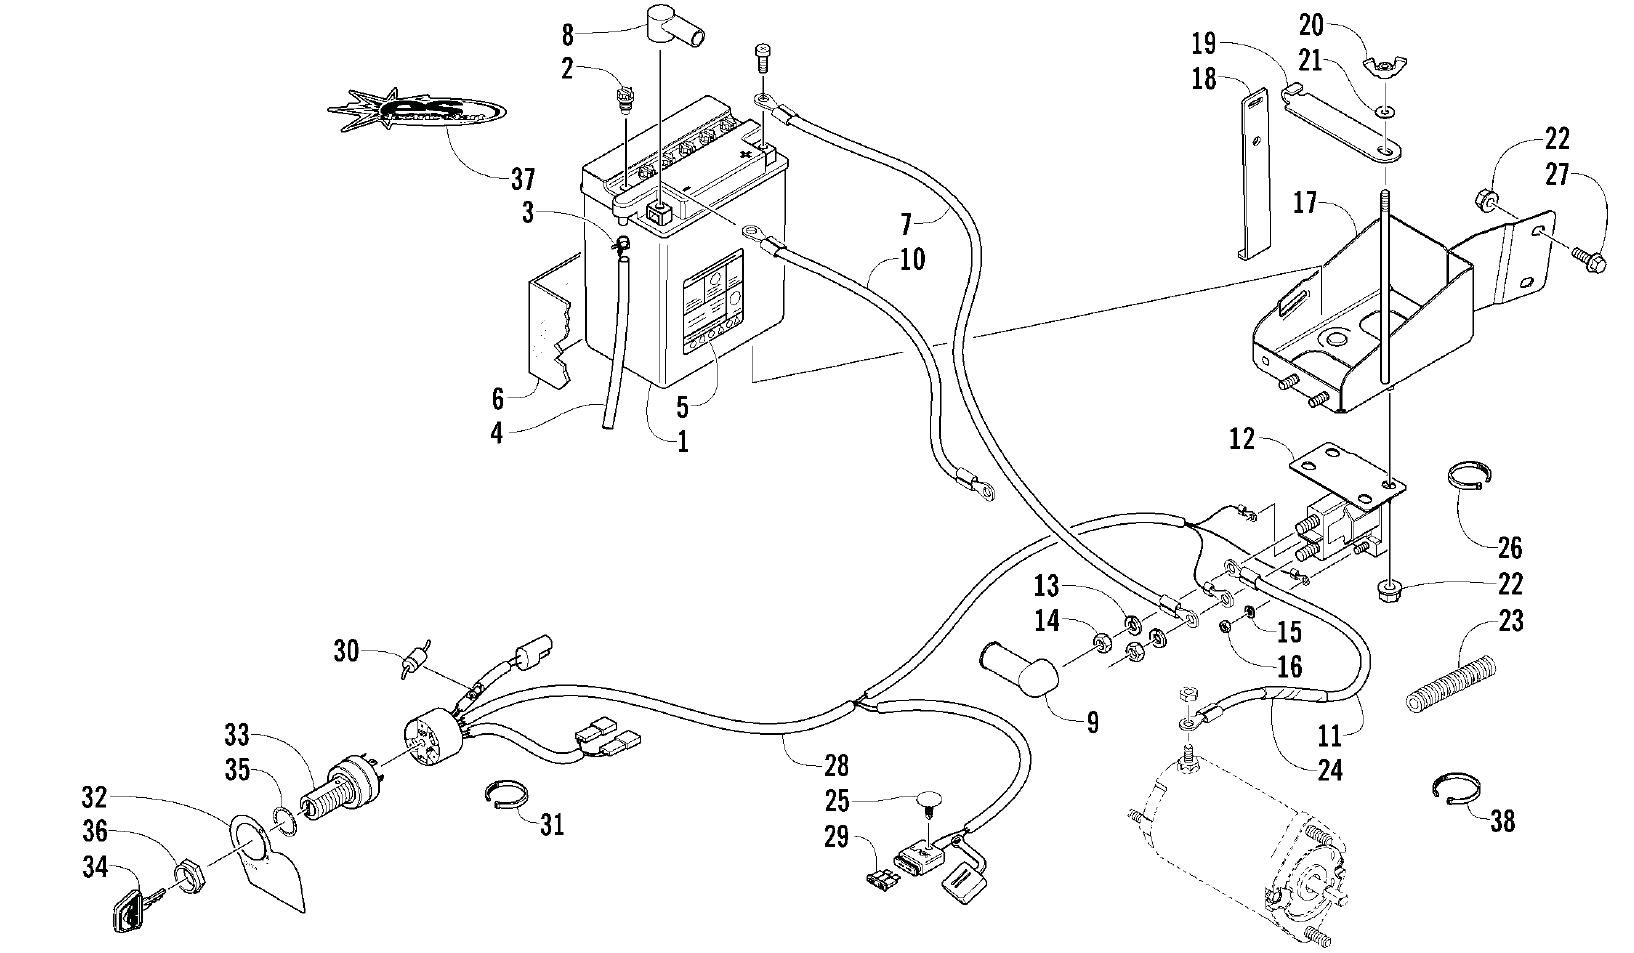 Arctic Cat 400 4x4 Schematics Atv Wiring Diagram For A